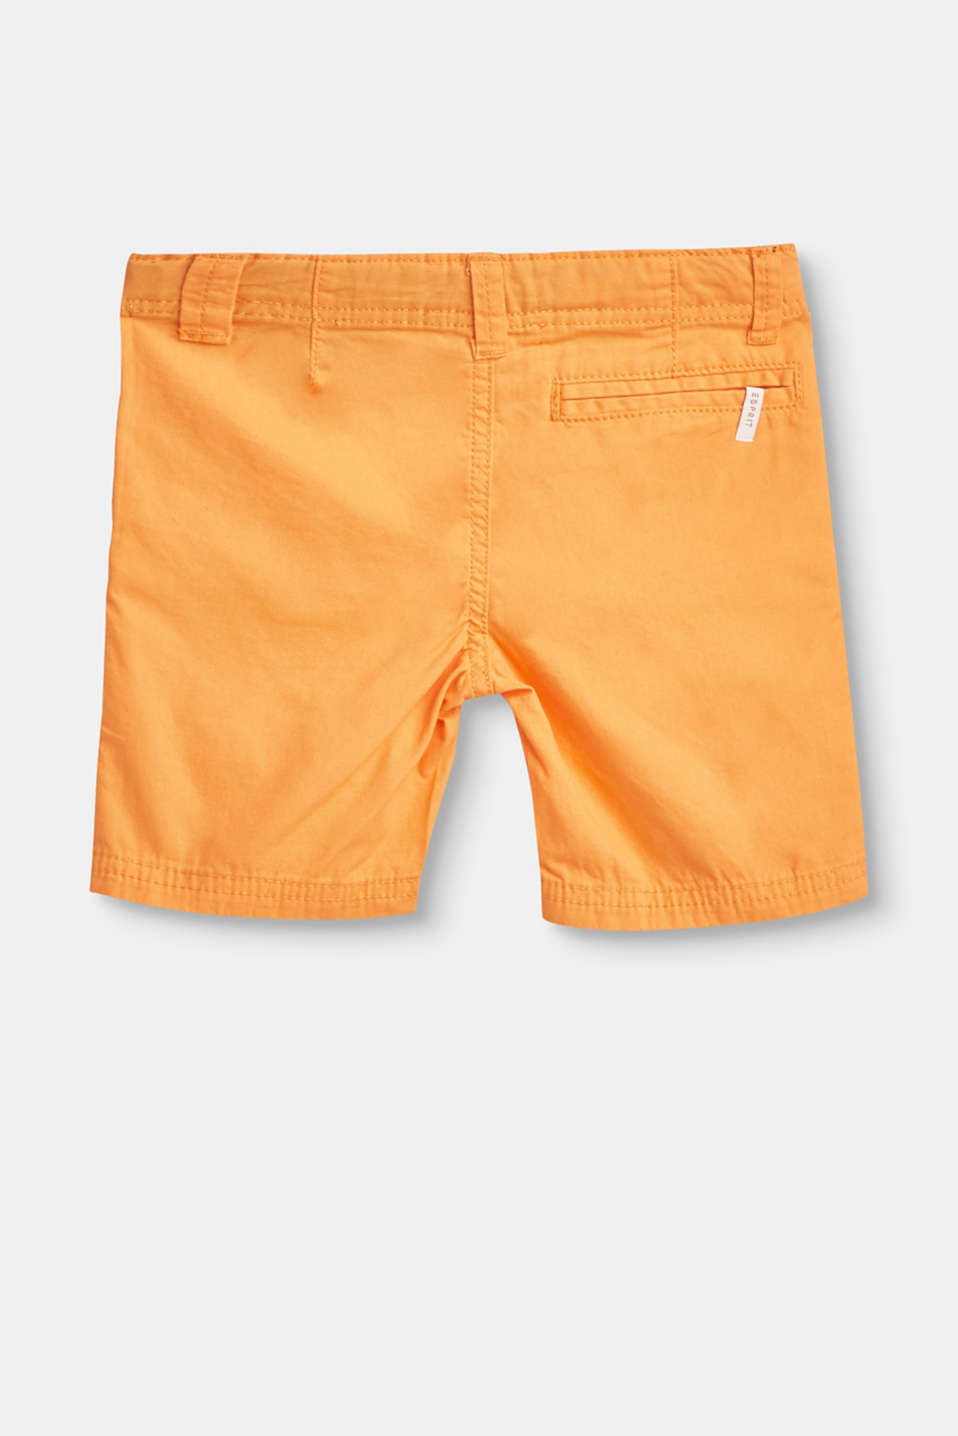 Shorts with adjustable waistband, 100% cotton